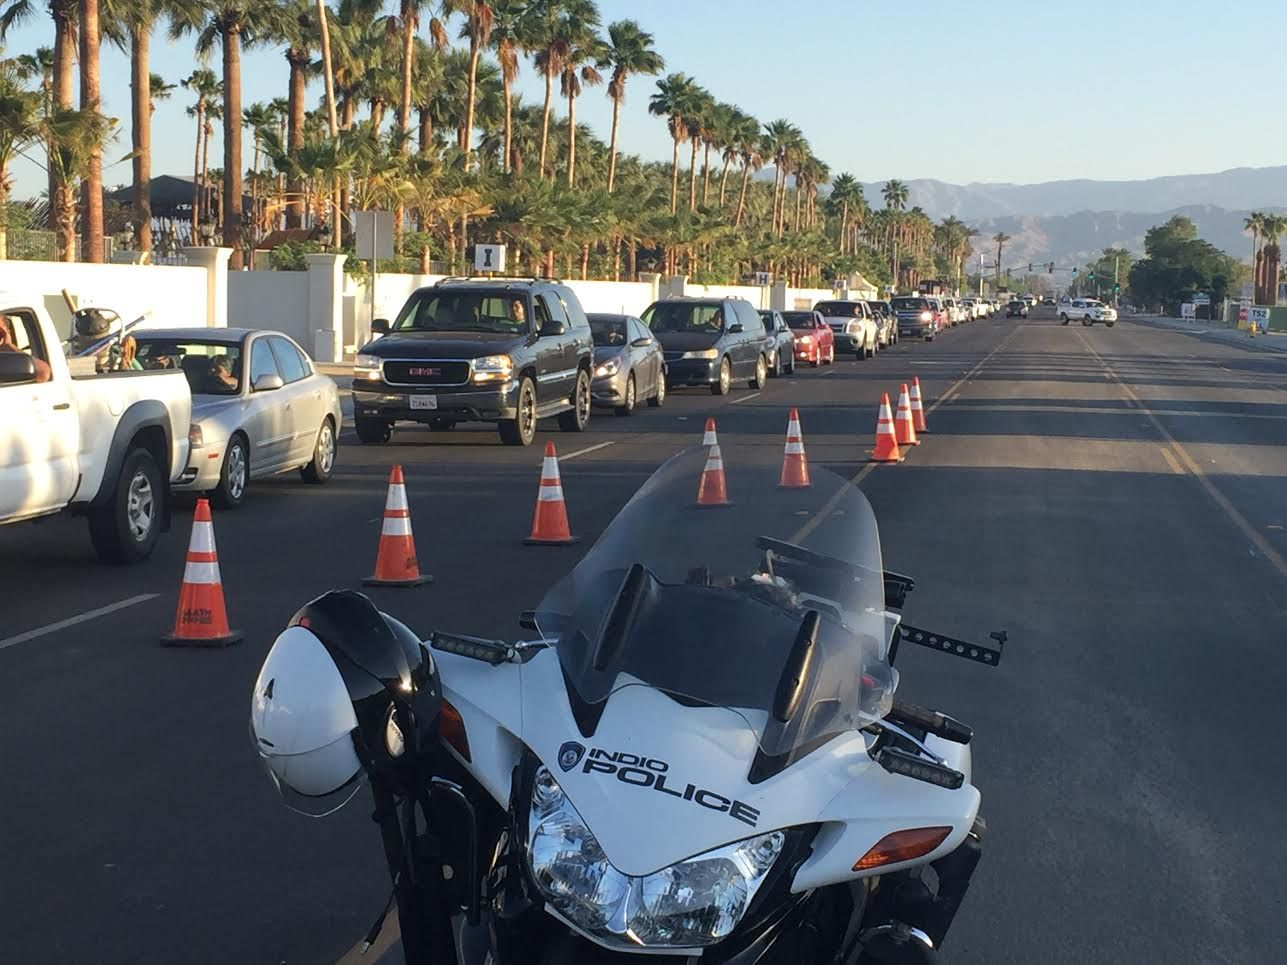 Traffic Accidents and Congestion, Coachella Weekend Two is Here